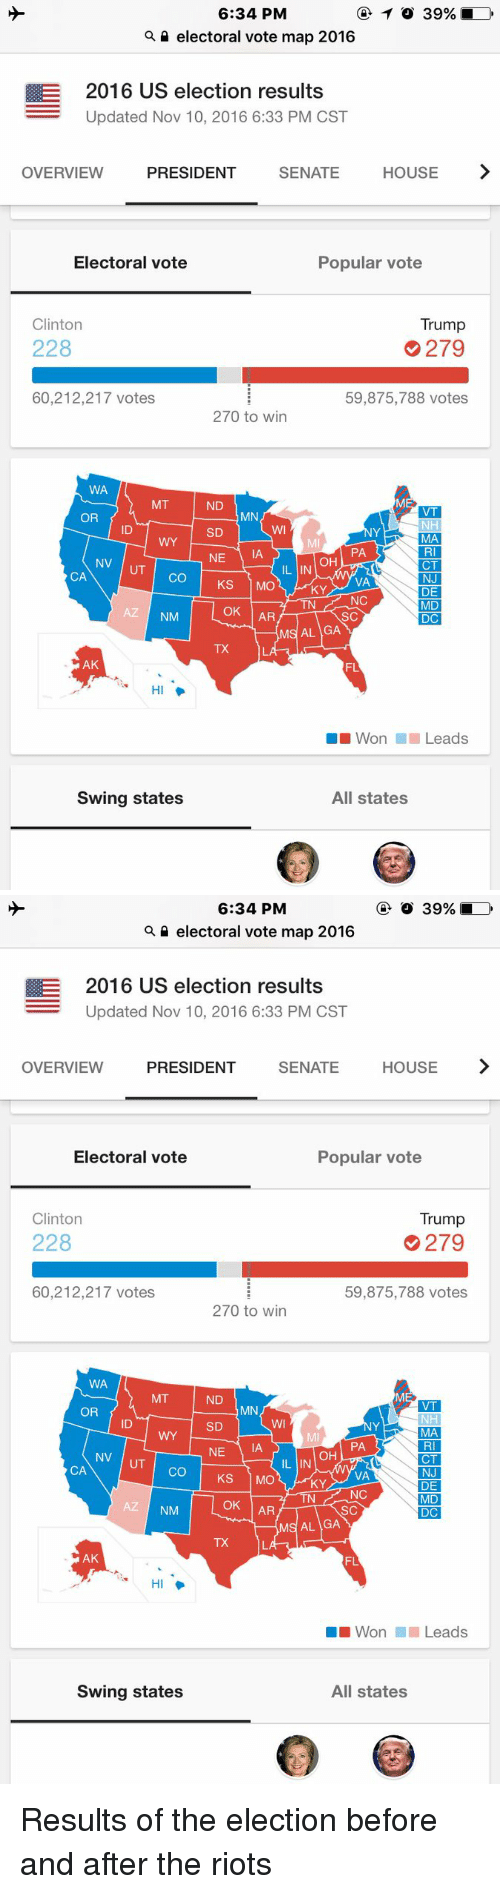 Vote Trump: 6:34 PM  TO 39%  electoral vote map 2016  E 2016 US election results  Updated Nov 10, 2016 6:33 PM CST  OVERVIEW  PRESIDENT  SENATE  HOUSE  Electoral vote  Popular vote  Clinton  Trump  228  279  60,212,217 votes.  59,875,788 votes.  270 to win  WA  MT  ND  VT  MN  OR  NHI  SD  MA  PA  L NE  IAA  OH  NV  CT  UT  CA  CO  KS  MO  NJ  VA  KY  DE  NC  MD  OK  AR  AZ  NM  SC  DC  MS AL GA  AK  FL  HI  Won Leads  Swing states  All states   6:34 PM  electoral vote map 2016  E 2016 US election results  Updated Nov 10, 2016 6:33 PM CST  OVERVIEW  PRESIDENT  SENATE  HOUSE  Electoral vote  Popular vote  Trump  Clinton  228  279  60,212,217 votes  59,875,788 votes  270 to win  WA  MT  ND  VT  MN  OR  NH  SD  MA  PA  NE  IA  OH  NV  CT  IL IN  CA  CO  1 MO  KS  NJ  VA  KY  DE  NC  TN  MD  OK  AR  NM  SC  DC  MS AL GA  AK  FL  Won Leads  Swing states  All states Results of the election before and after the riots